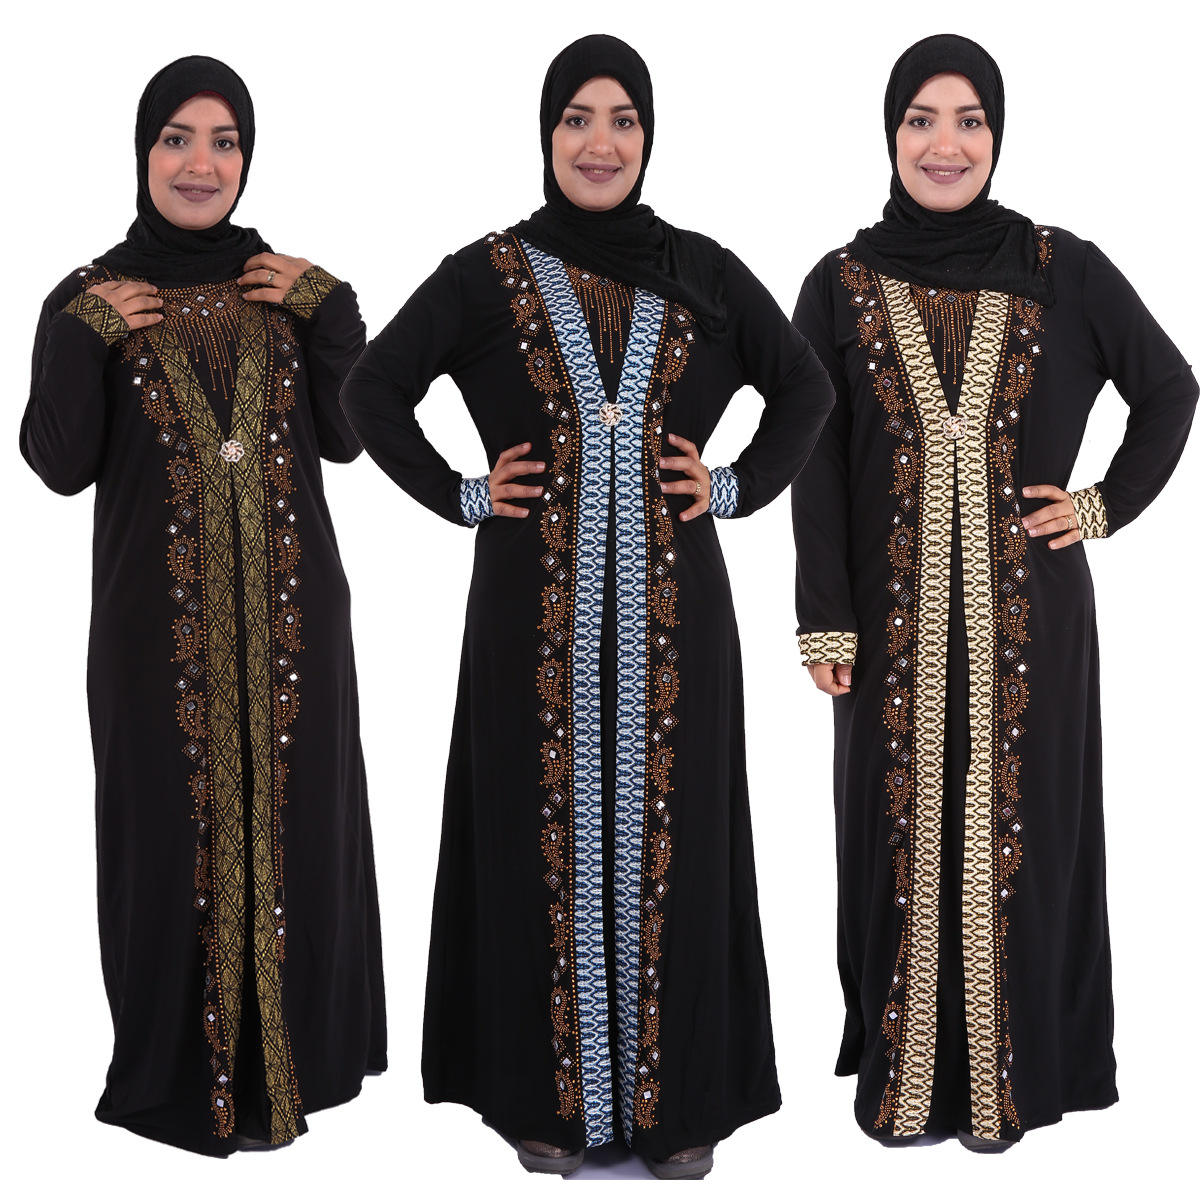 High Quality Women Islamic Prayer Lady Black Robe Arabic Robe Hijab Rhinestone Printed Dress Muslim